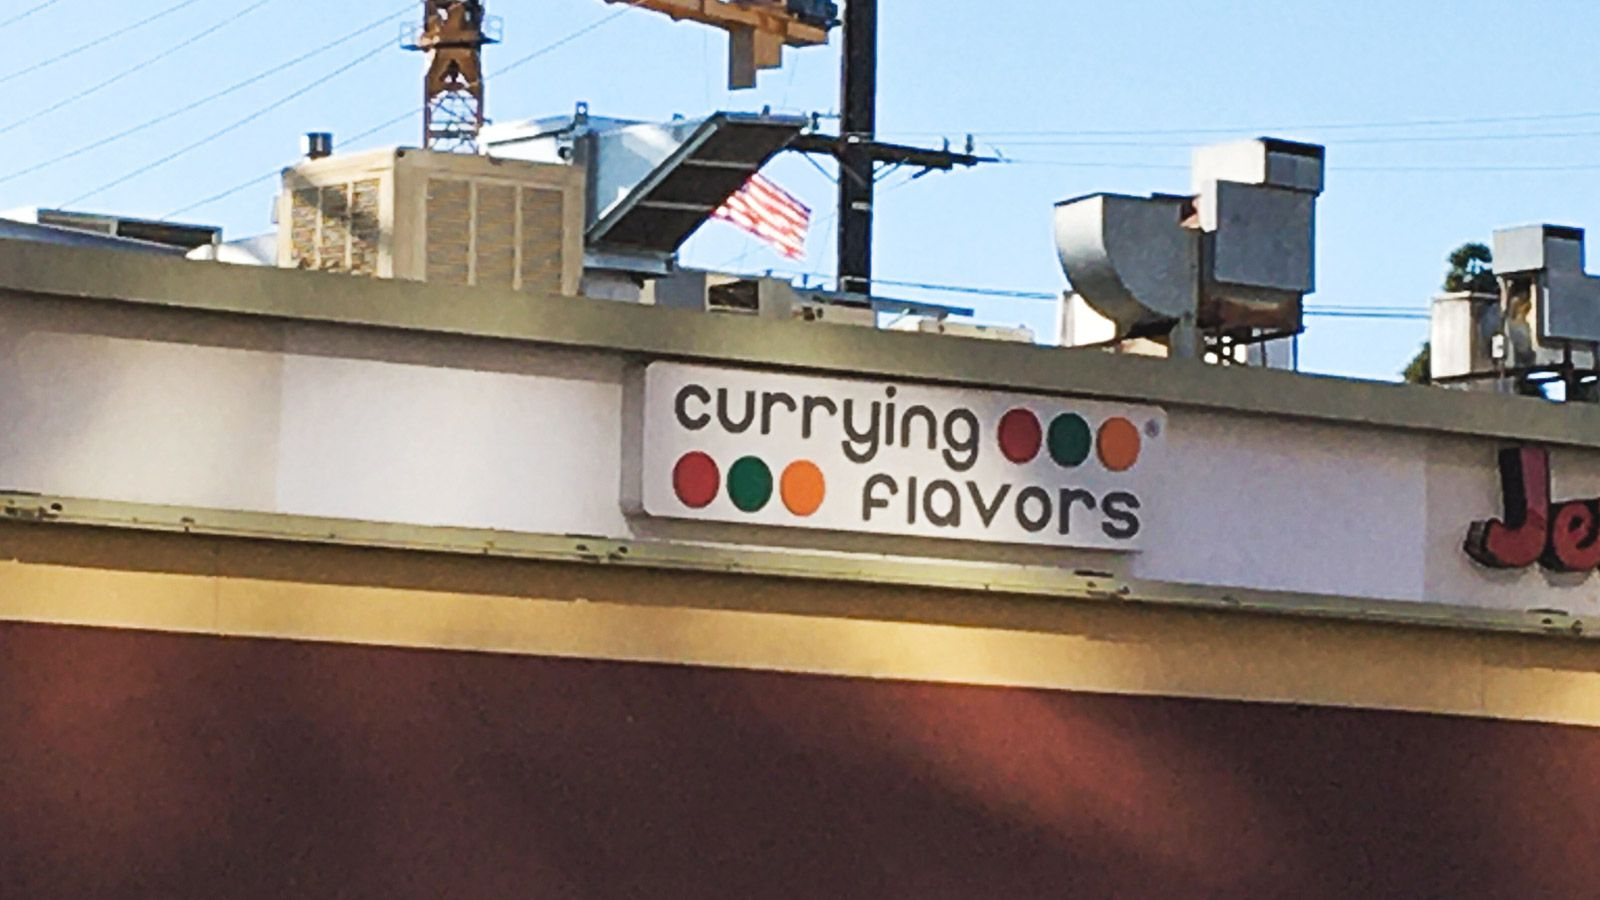 currying flavors light up sign